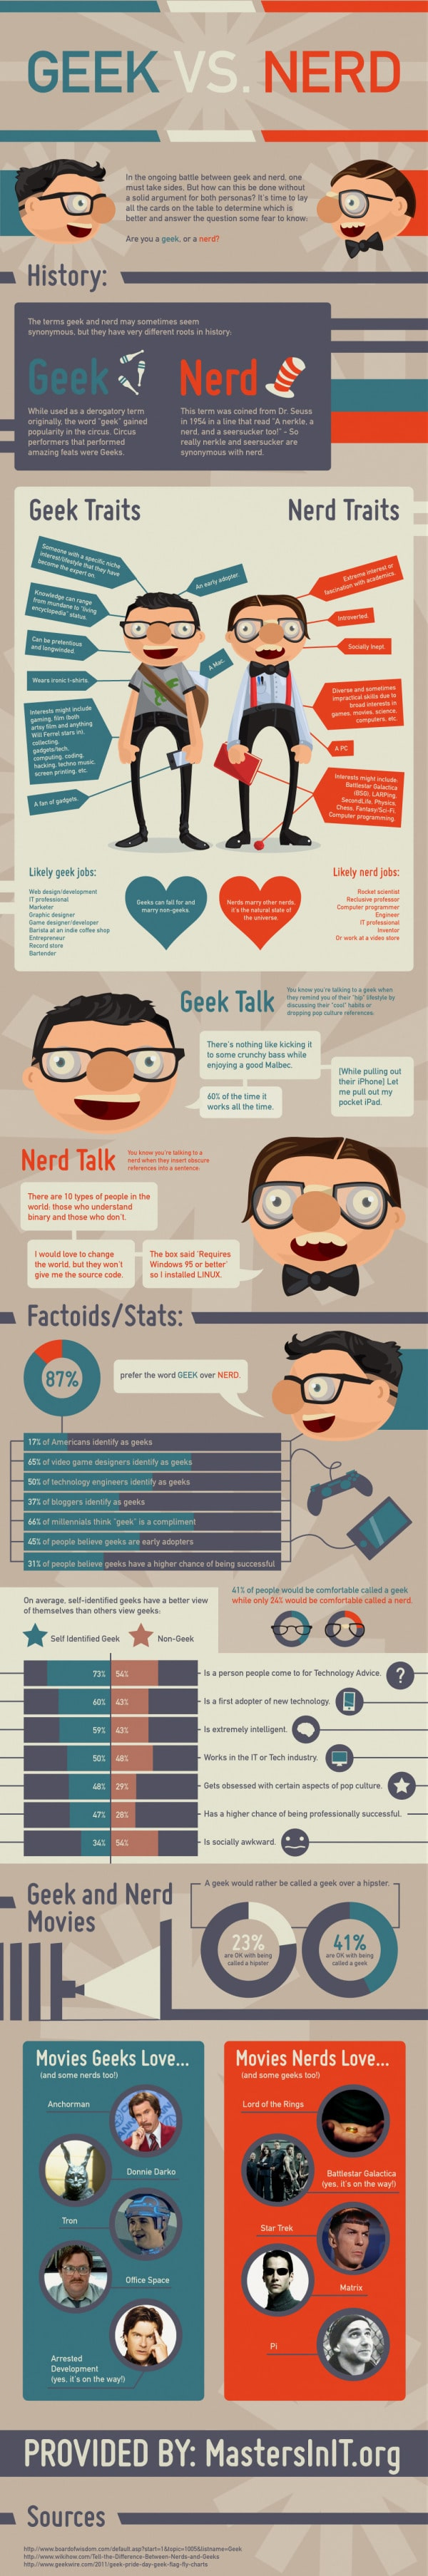 Geek vs Nerd Lifestyle Infographic